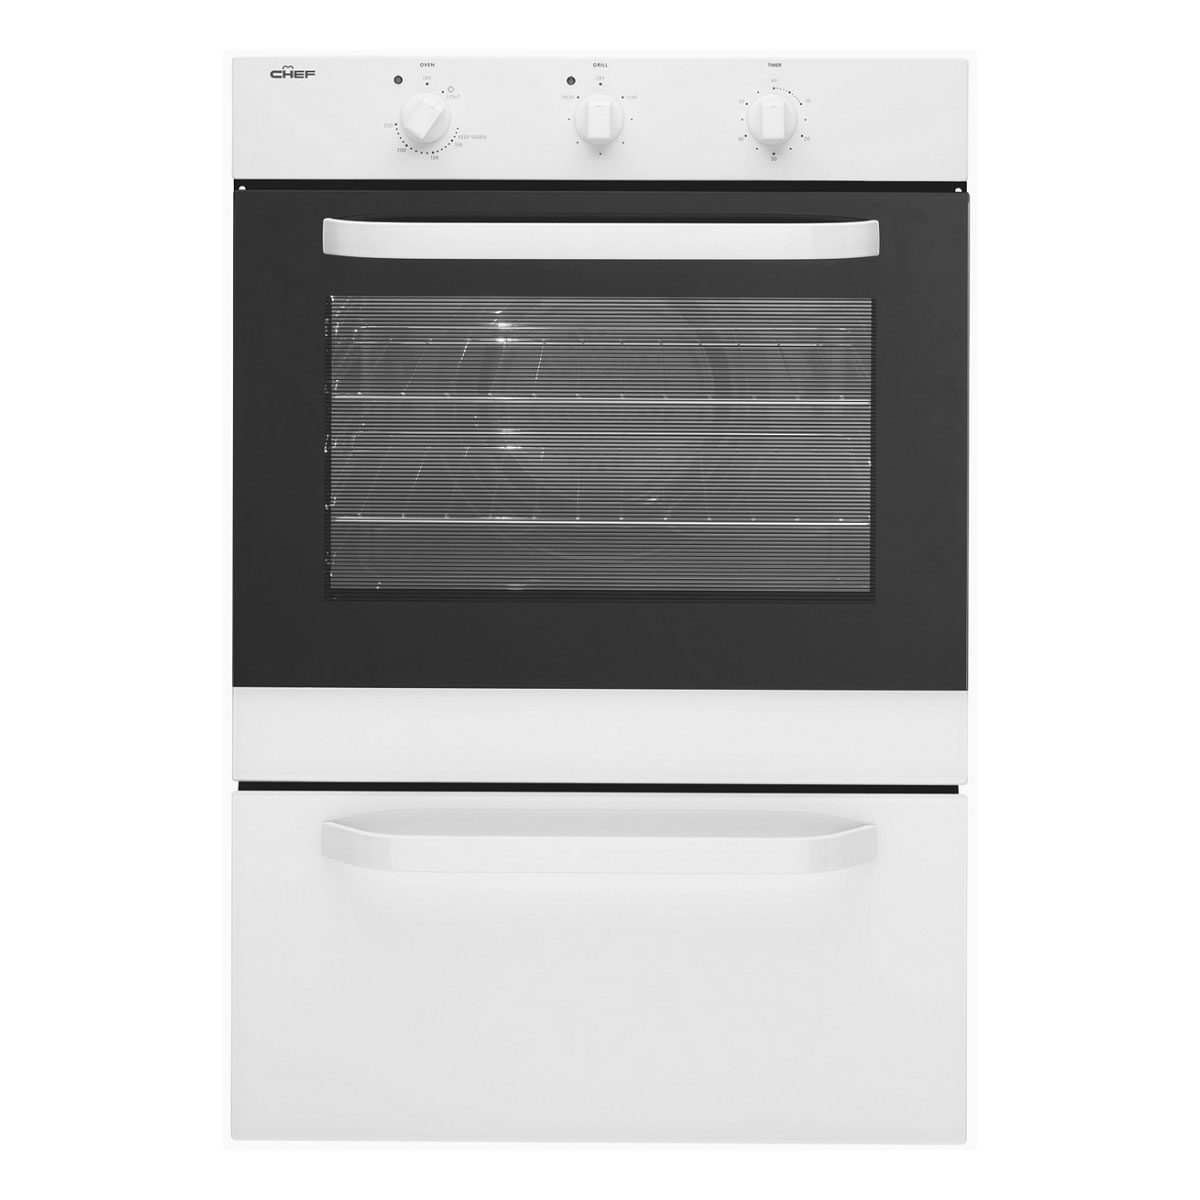 Chef EXC617W Electric Wall Oven 26938